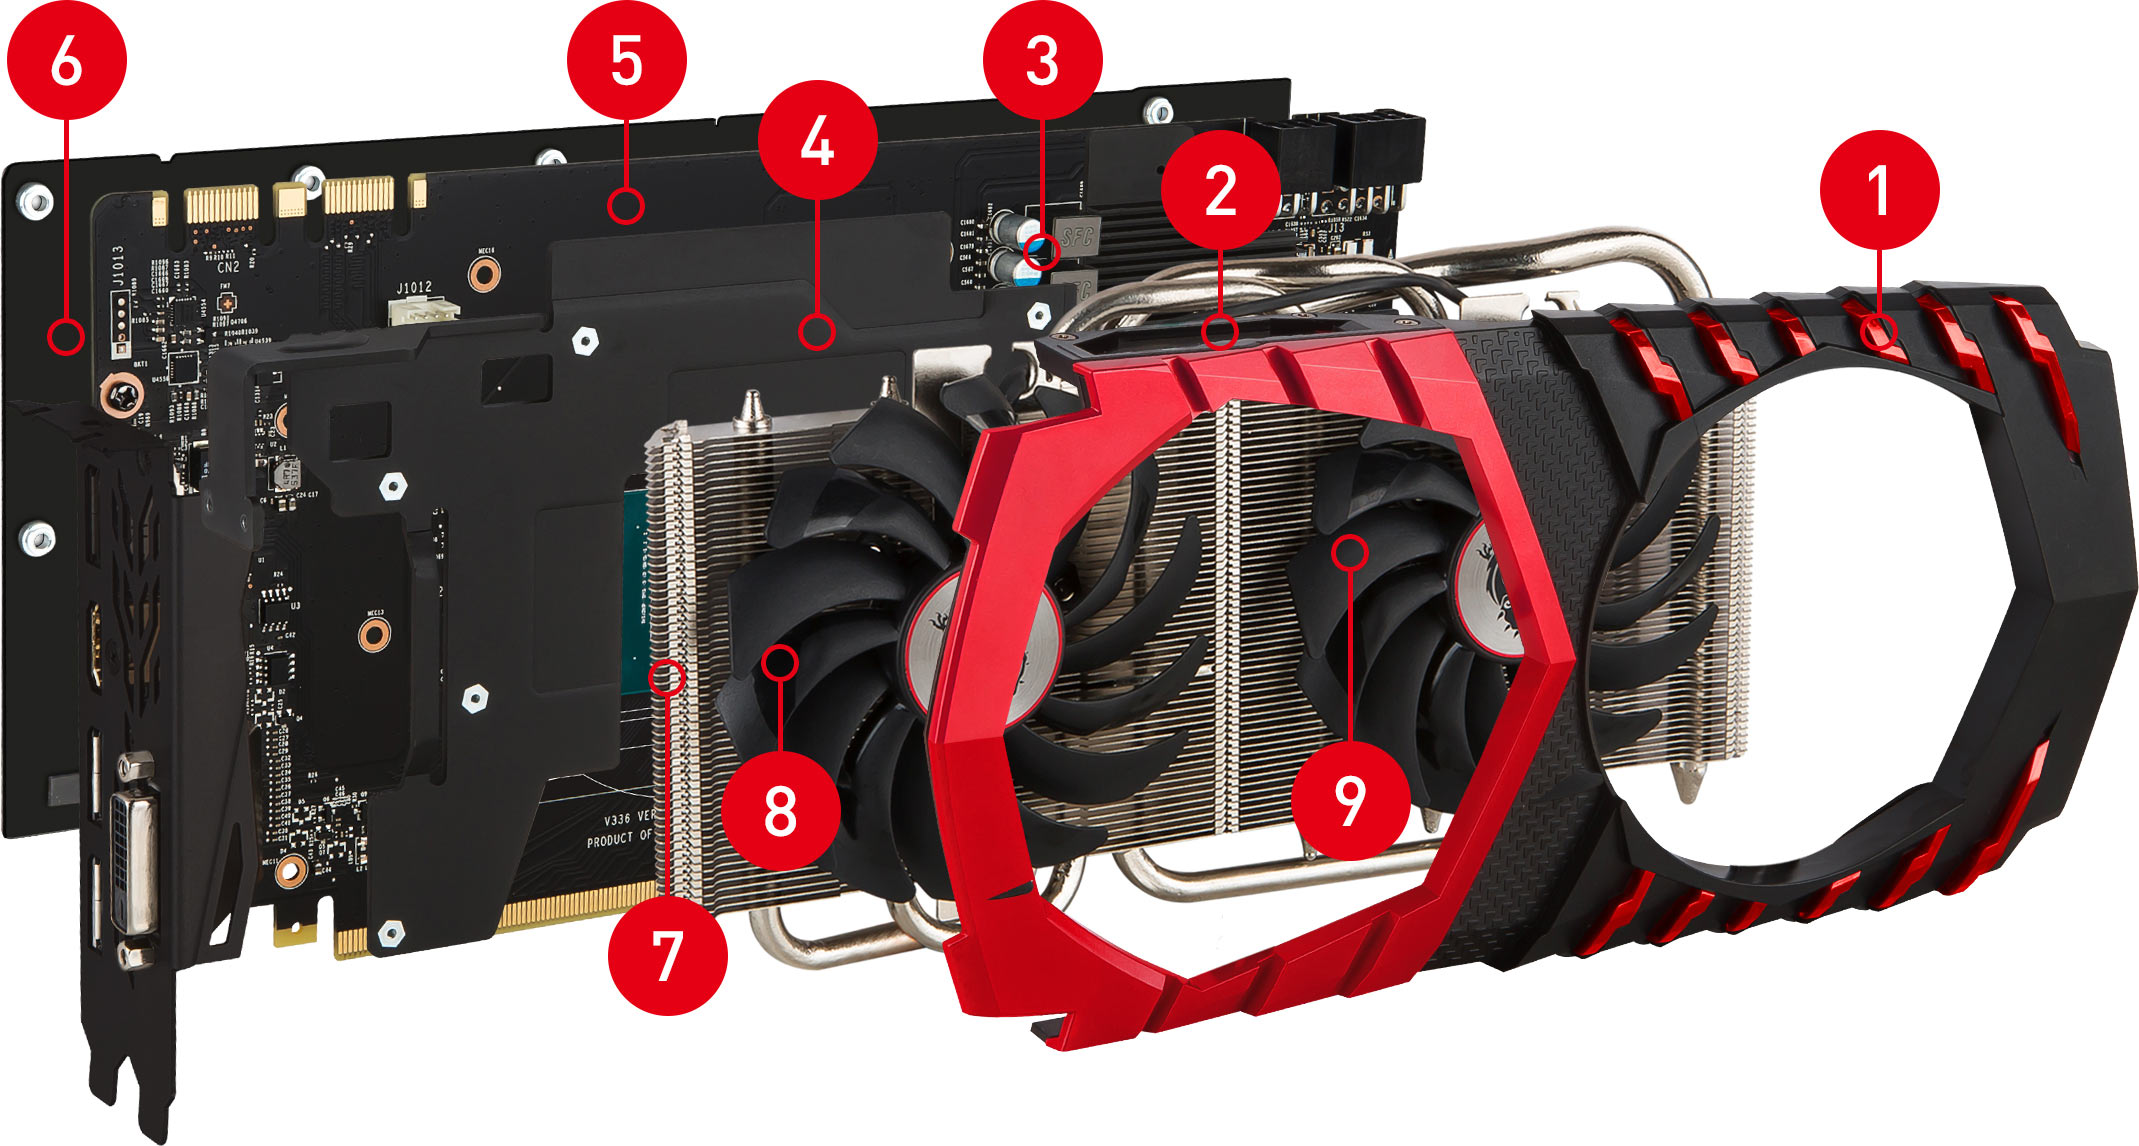 GTX 1060 GAMING X 8G exploded view